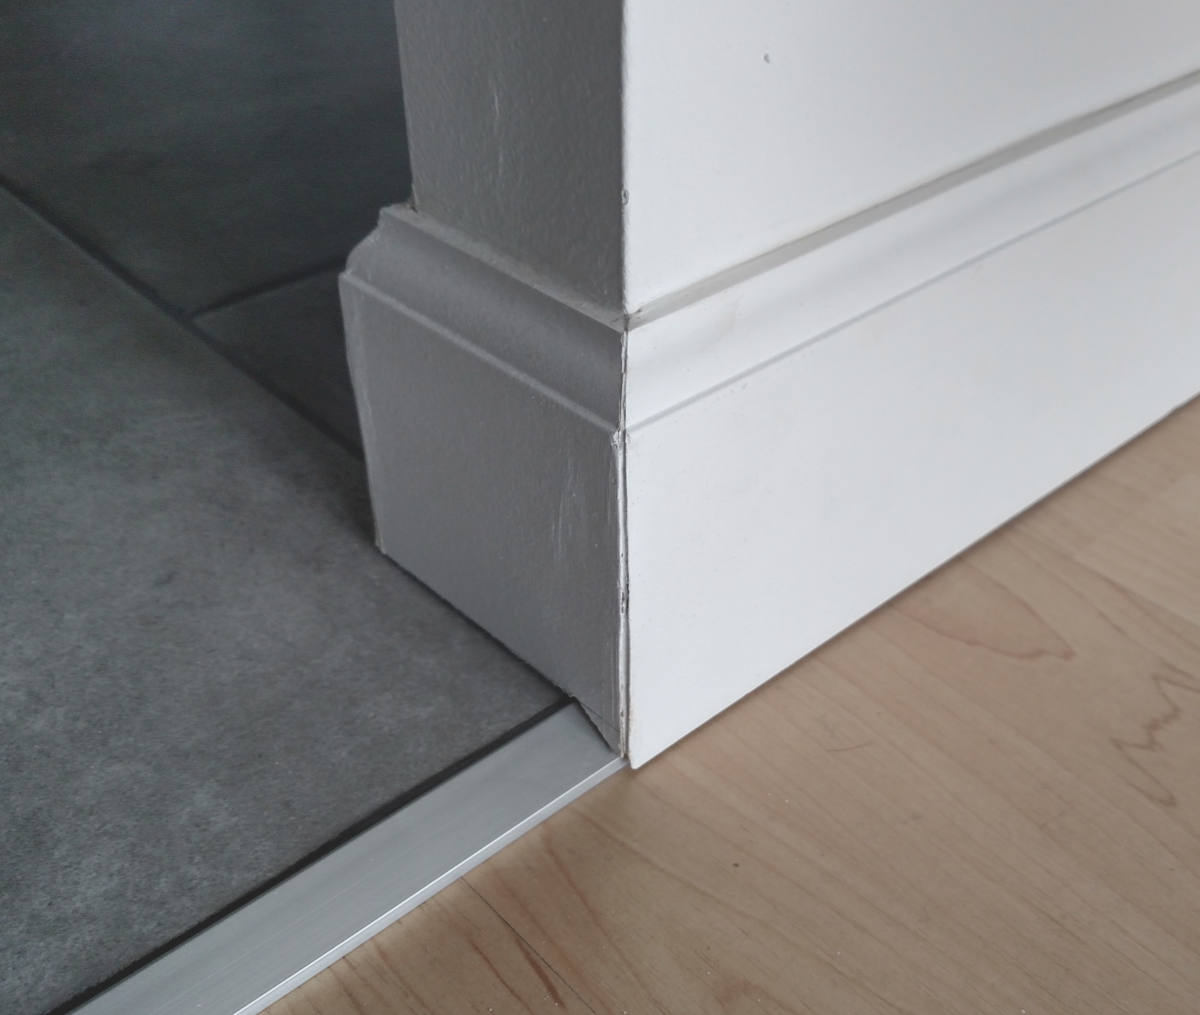 Baseboard corner condition with transition to tile.